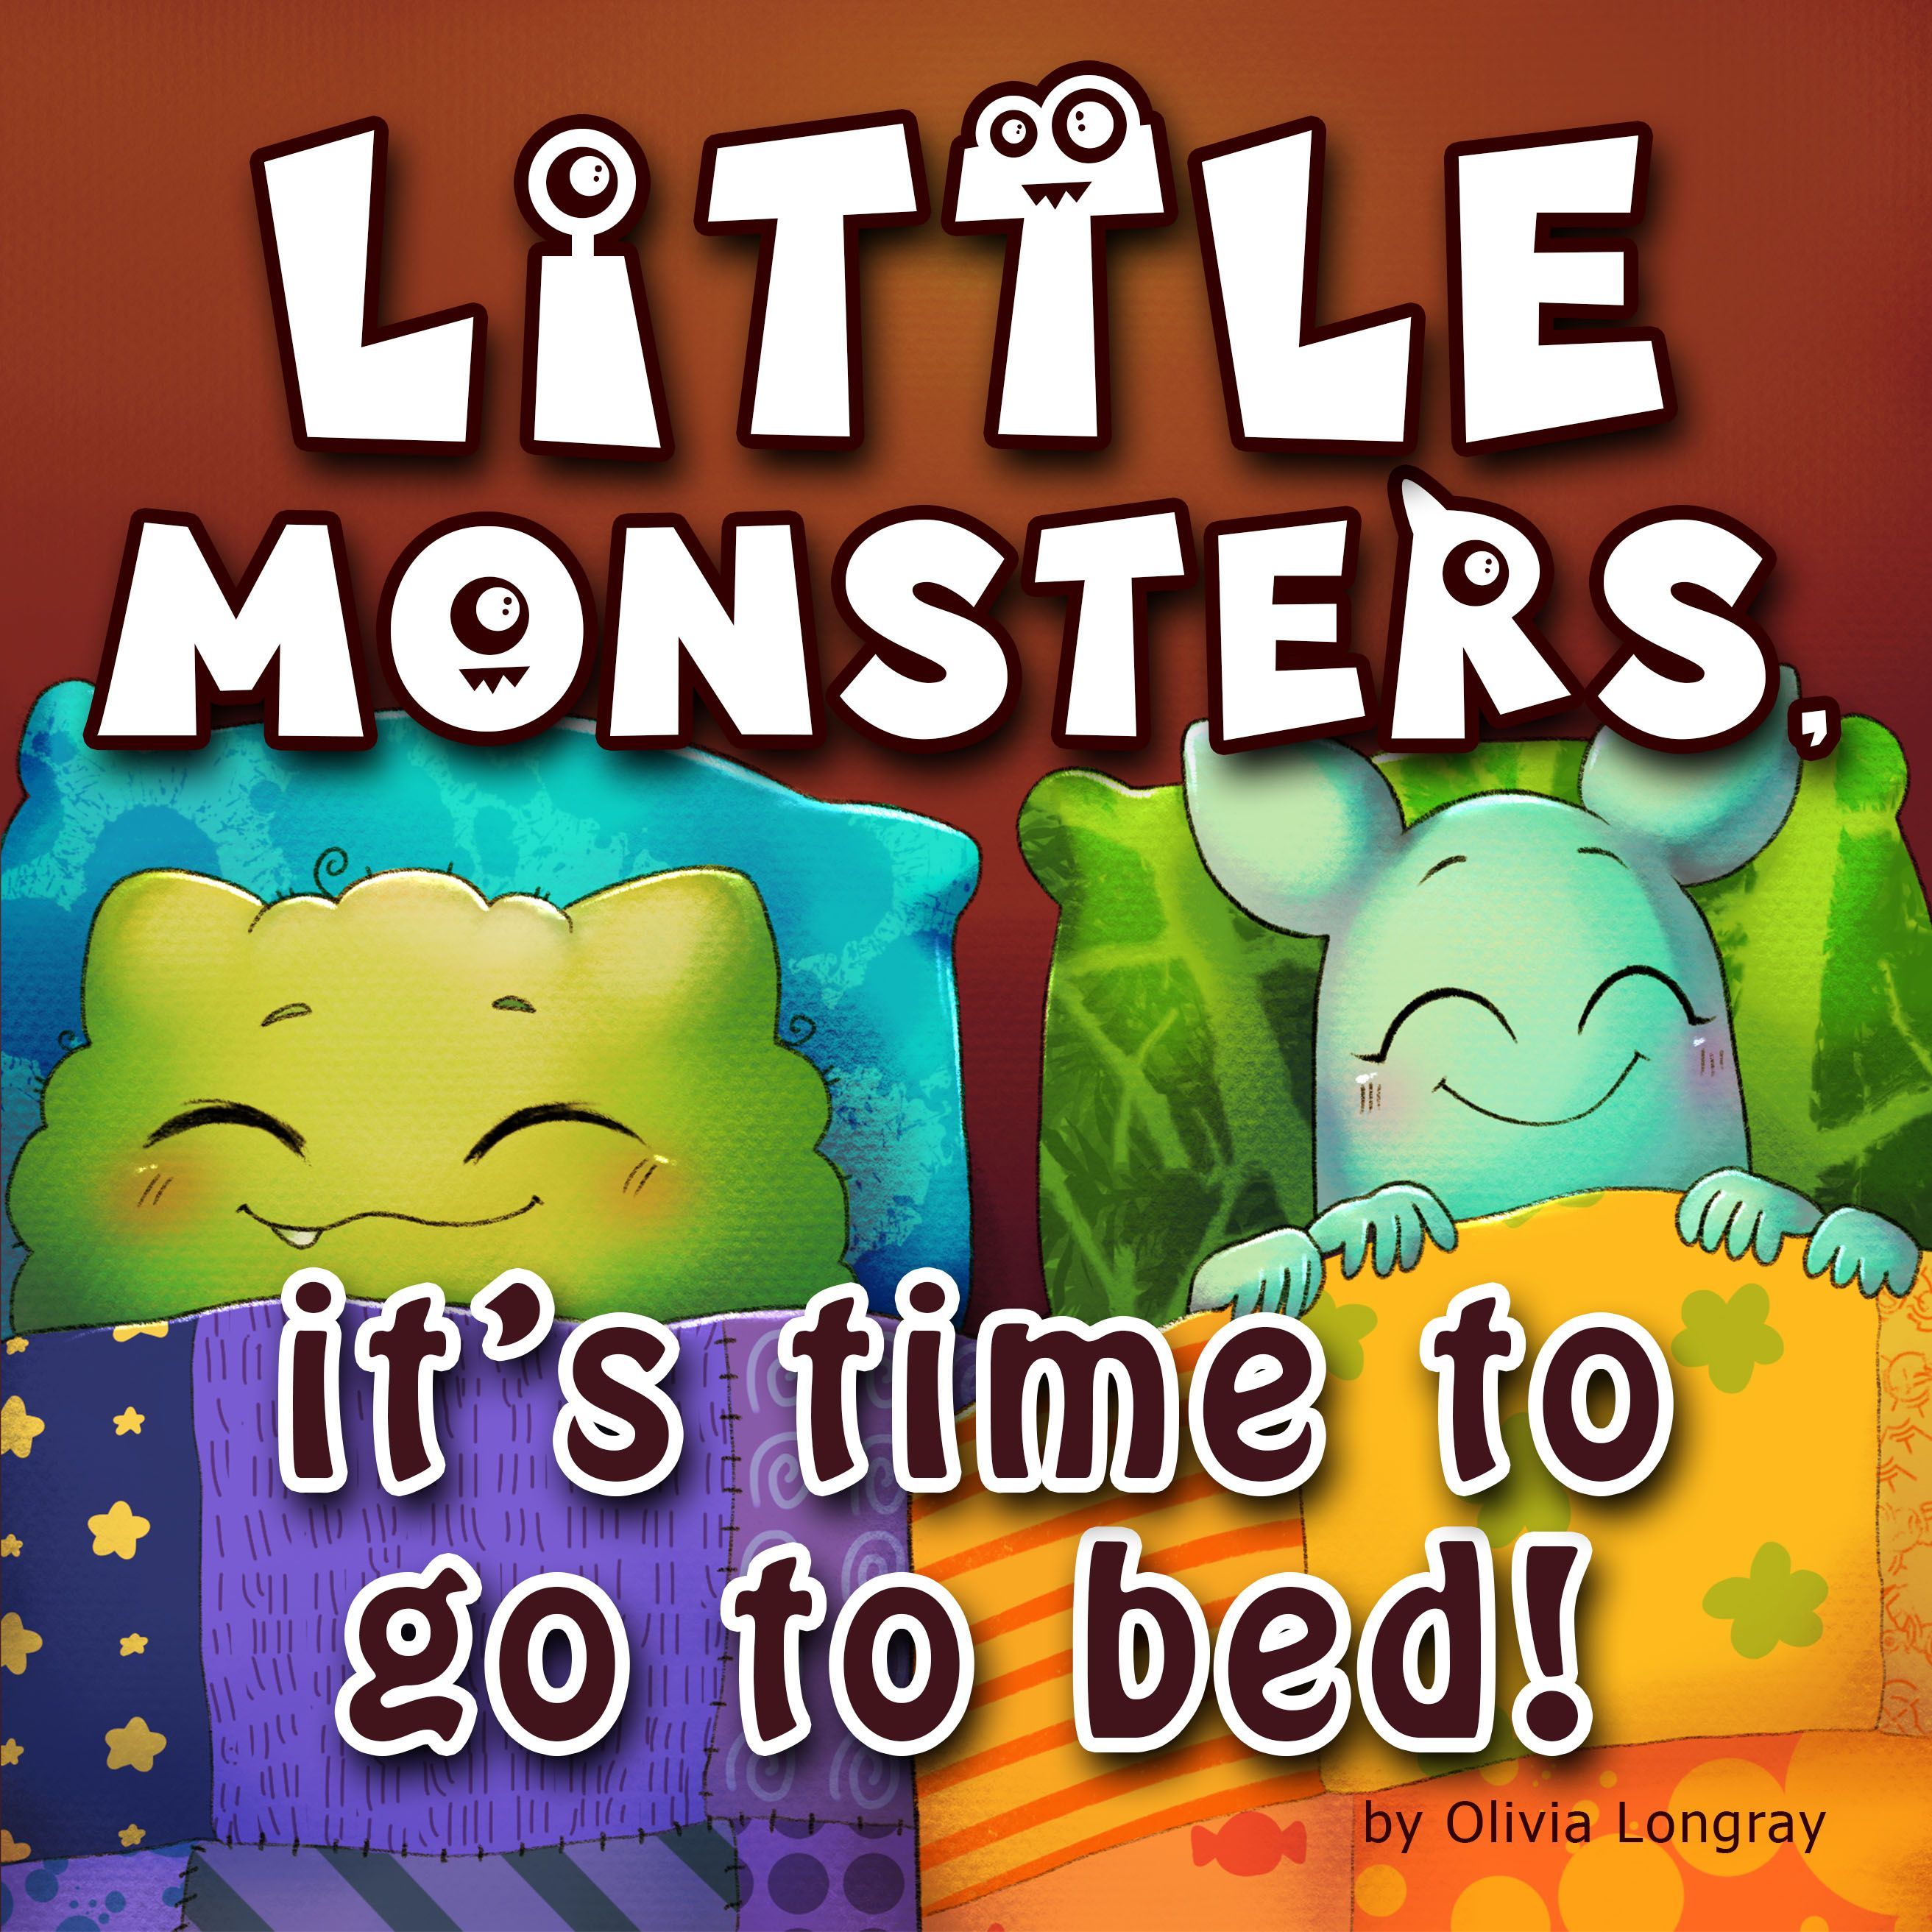 Little monsters, it's time to go to bed! Children's